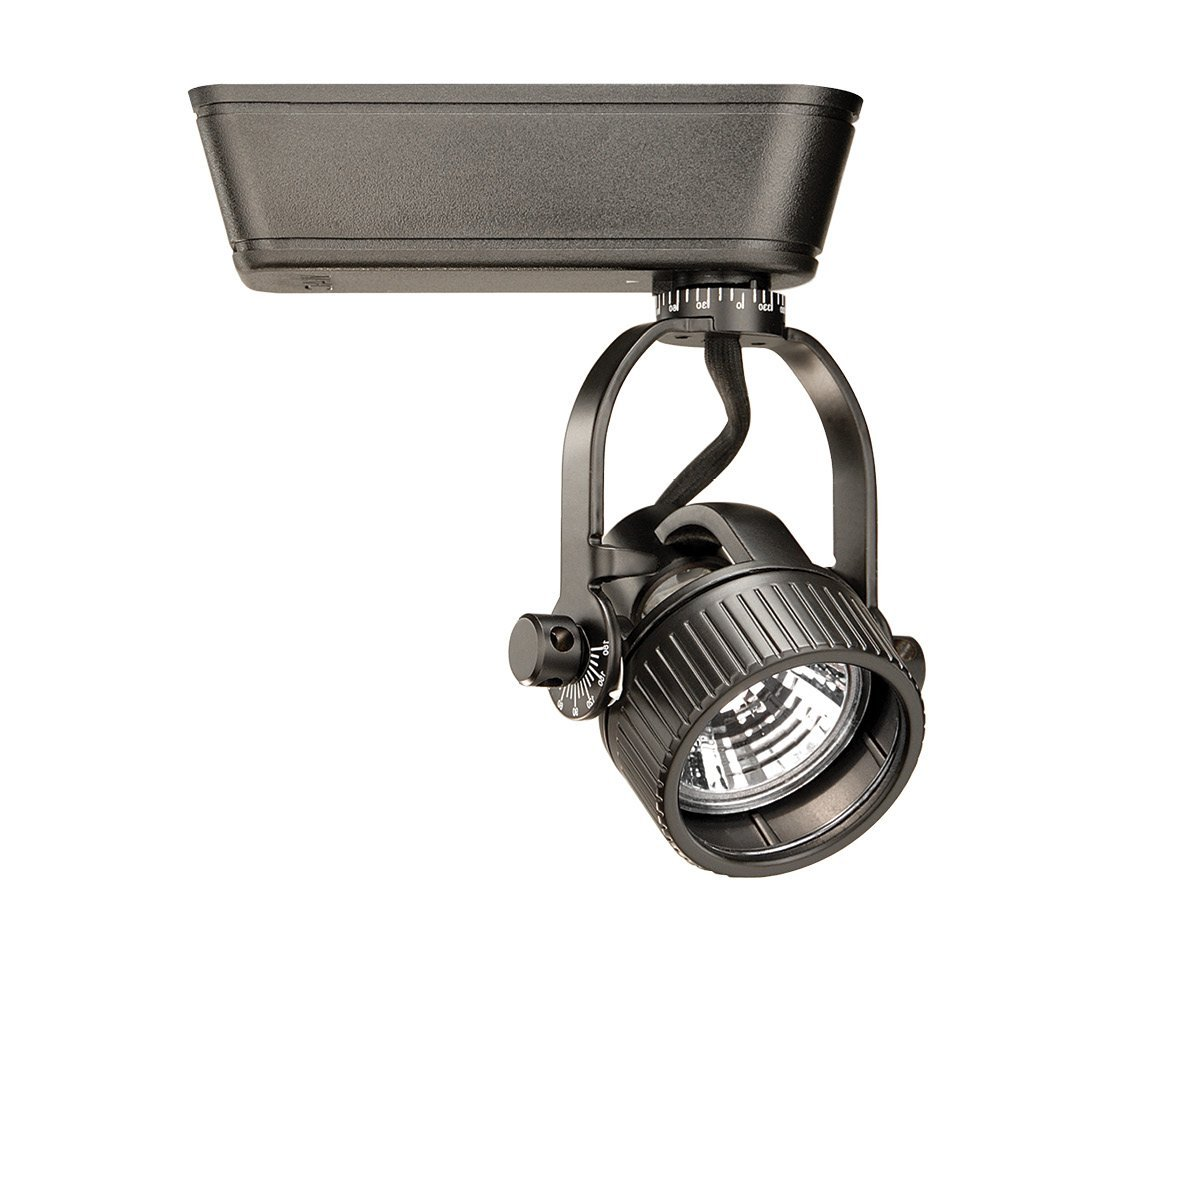 WAC Lighting HHT-164L-BK H Series Low Voltage Track Head, 75W